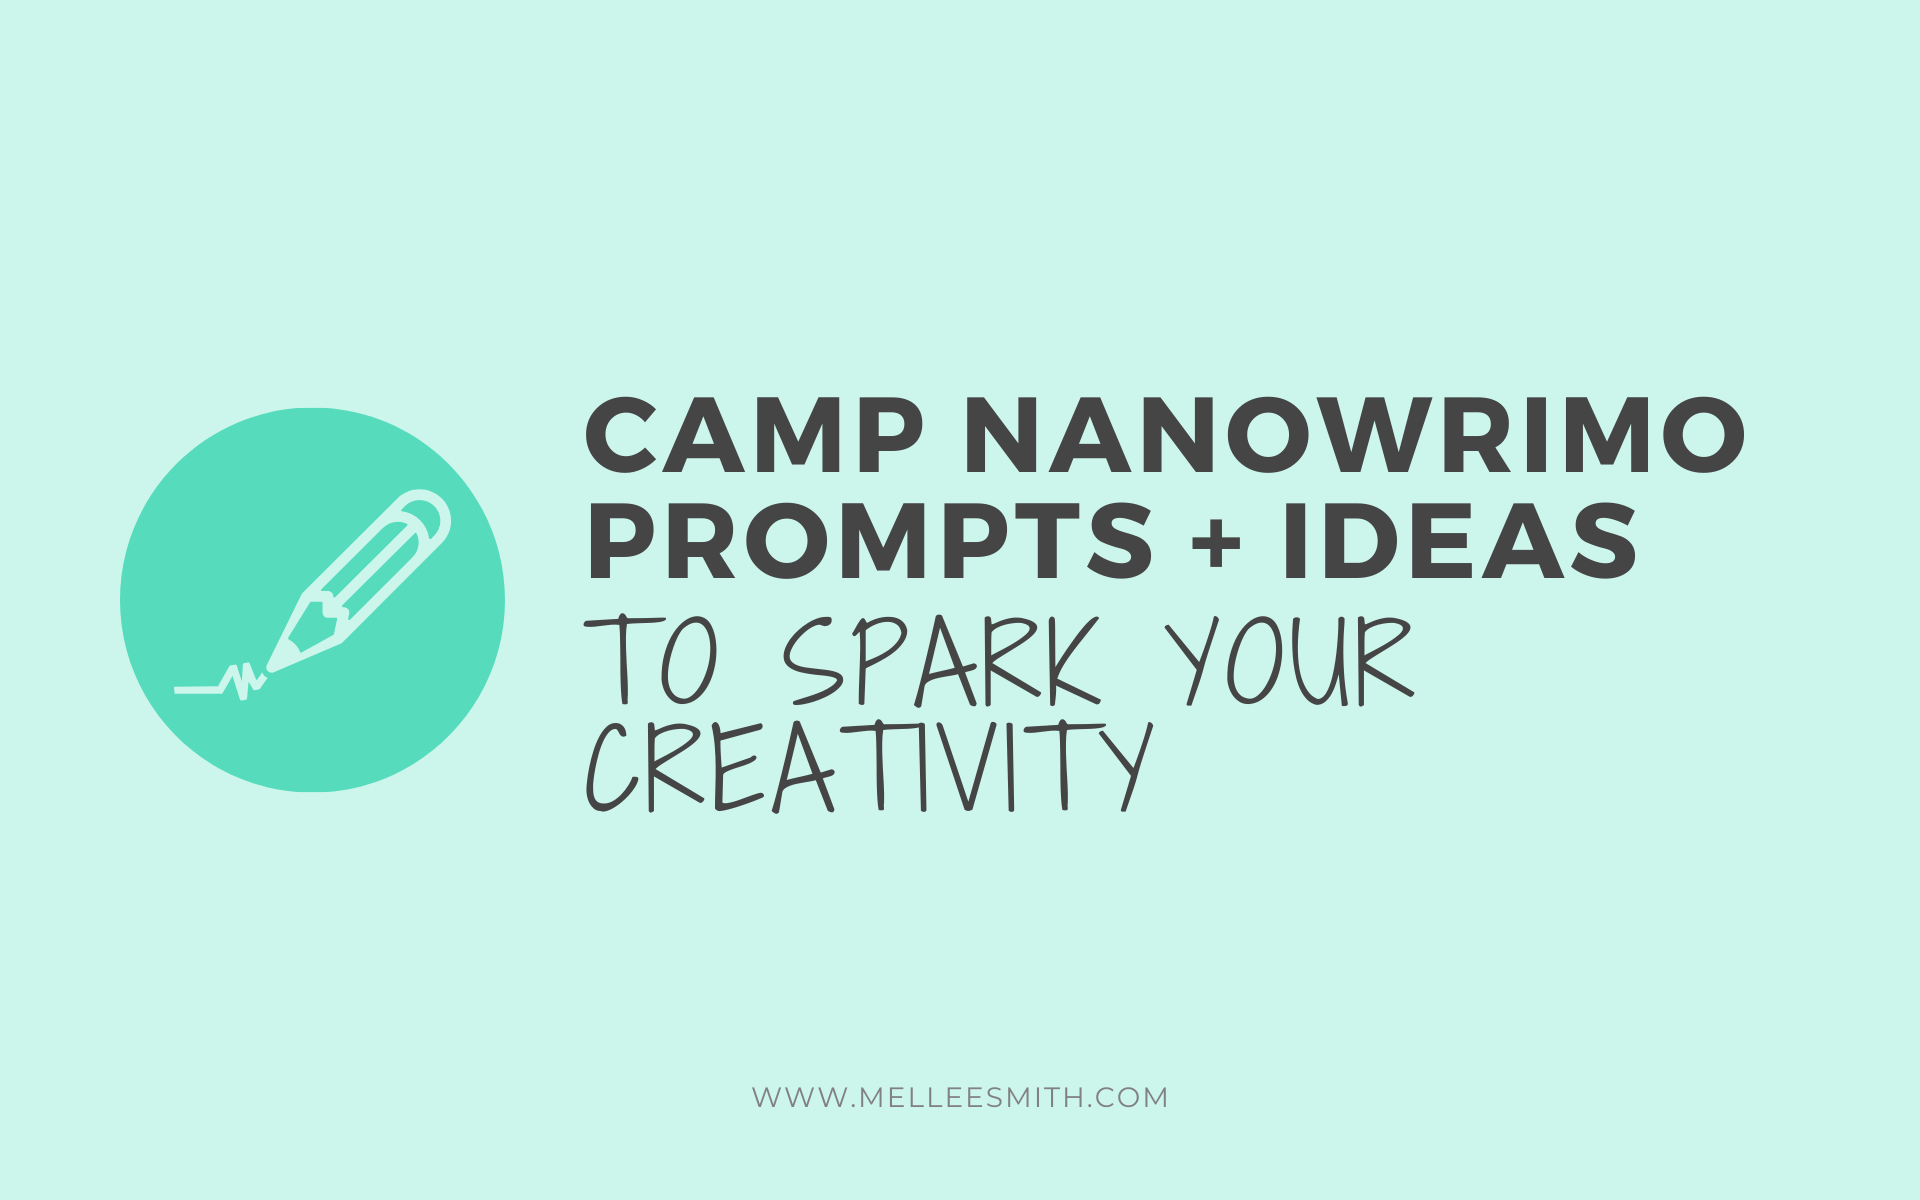 camp nanowrimo prompts and ideas featured image(1)